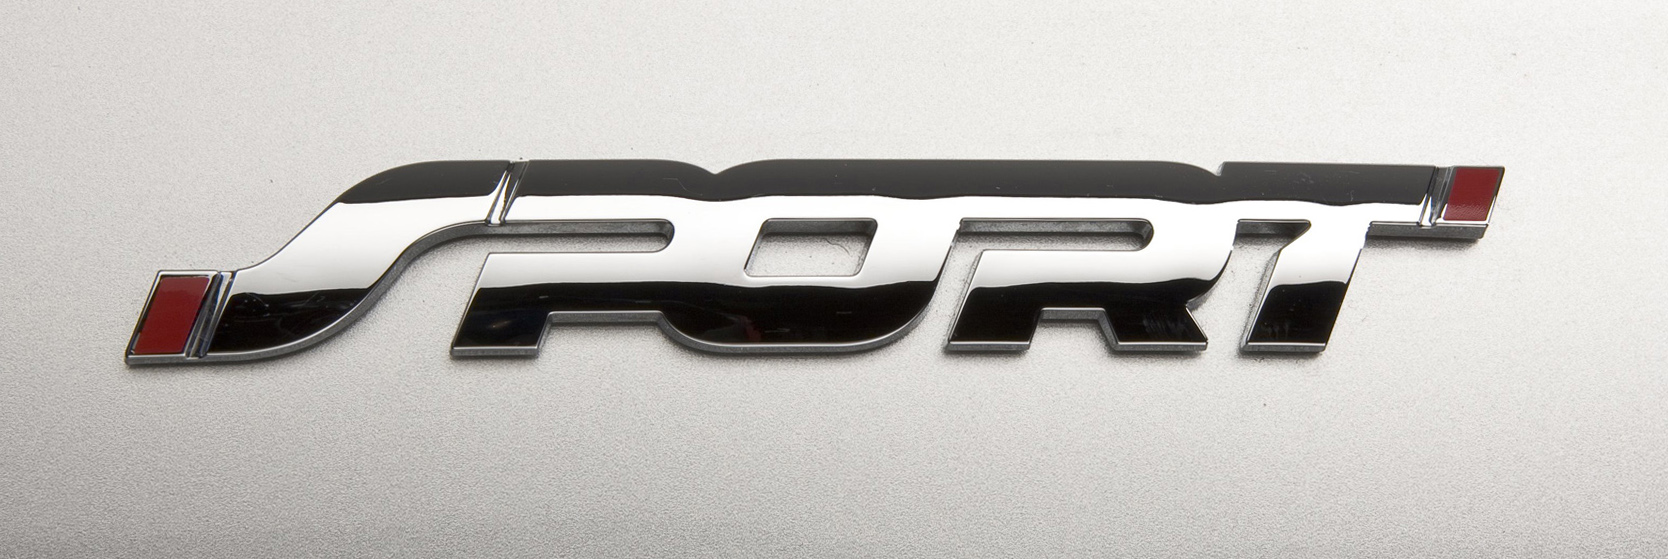 Ford fusion sport badge